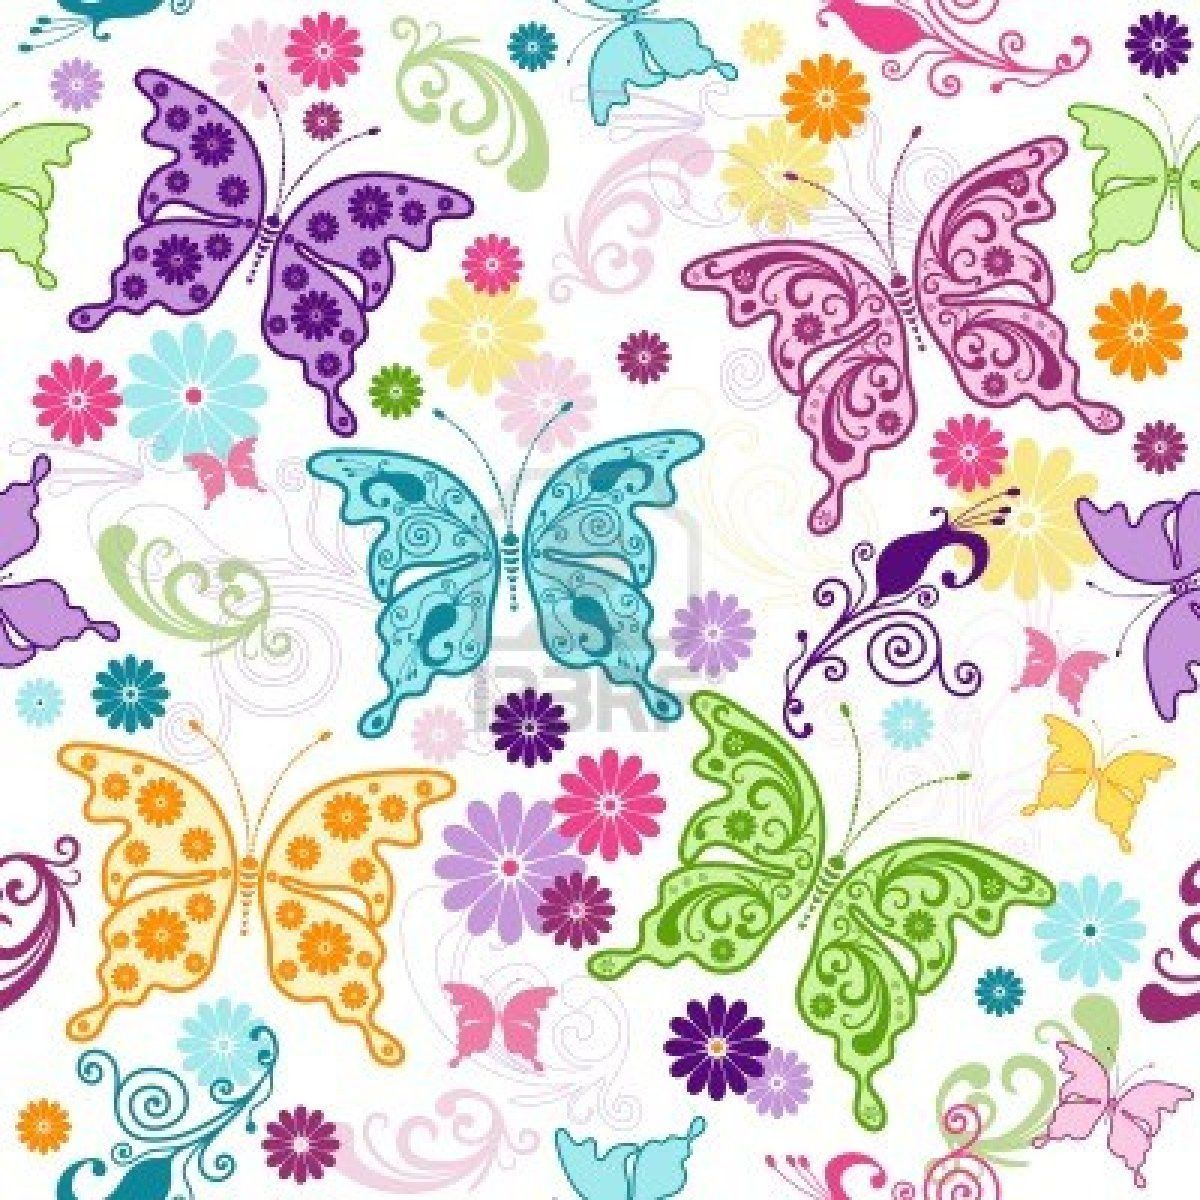 Pin by Beverly Mikonczyk on Butterflies Butterfly